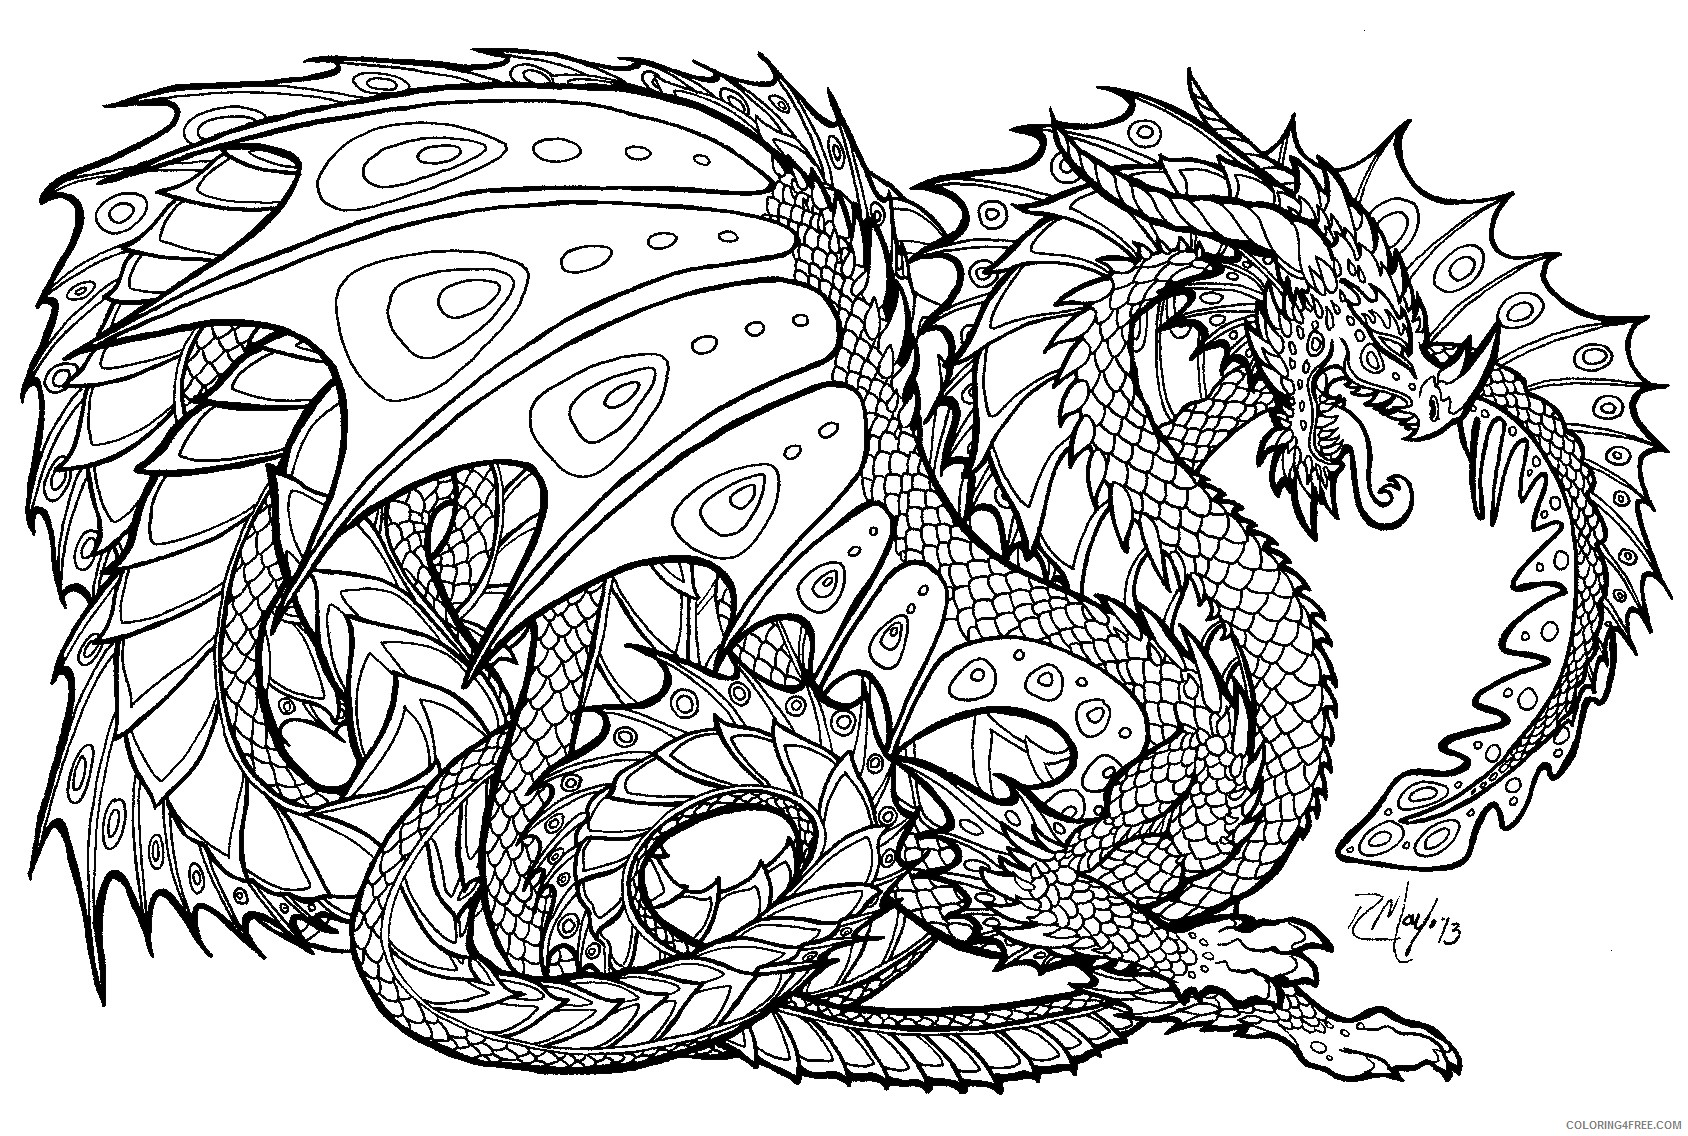 detailed coloring pages for adults dragon Coloring4free